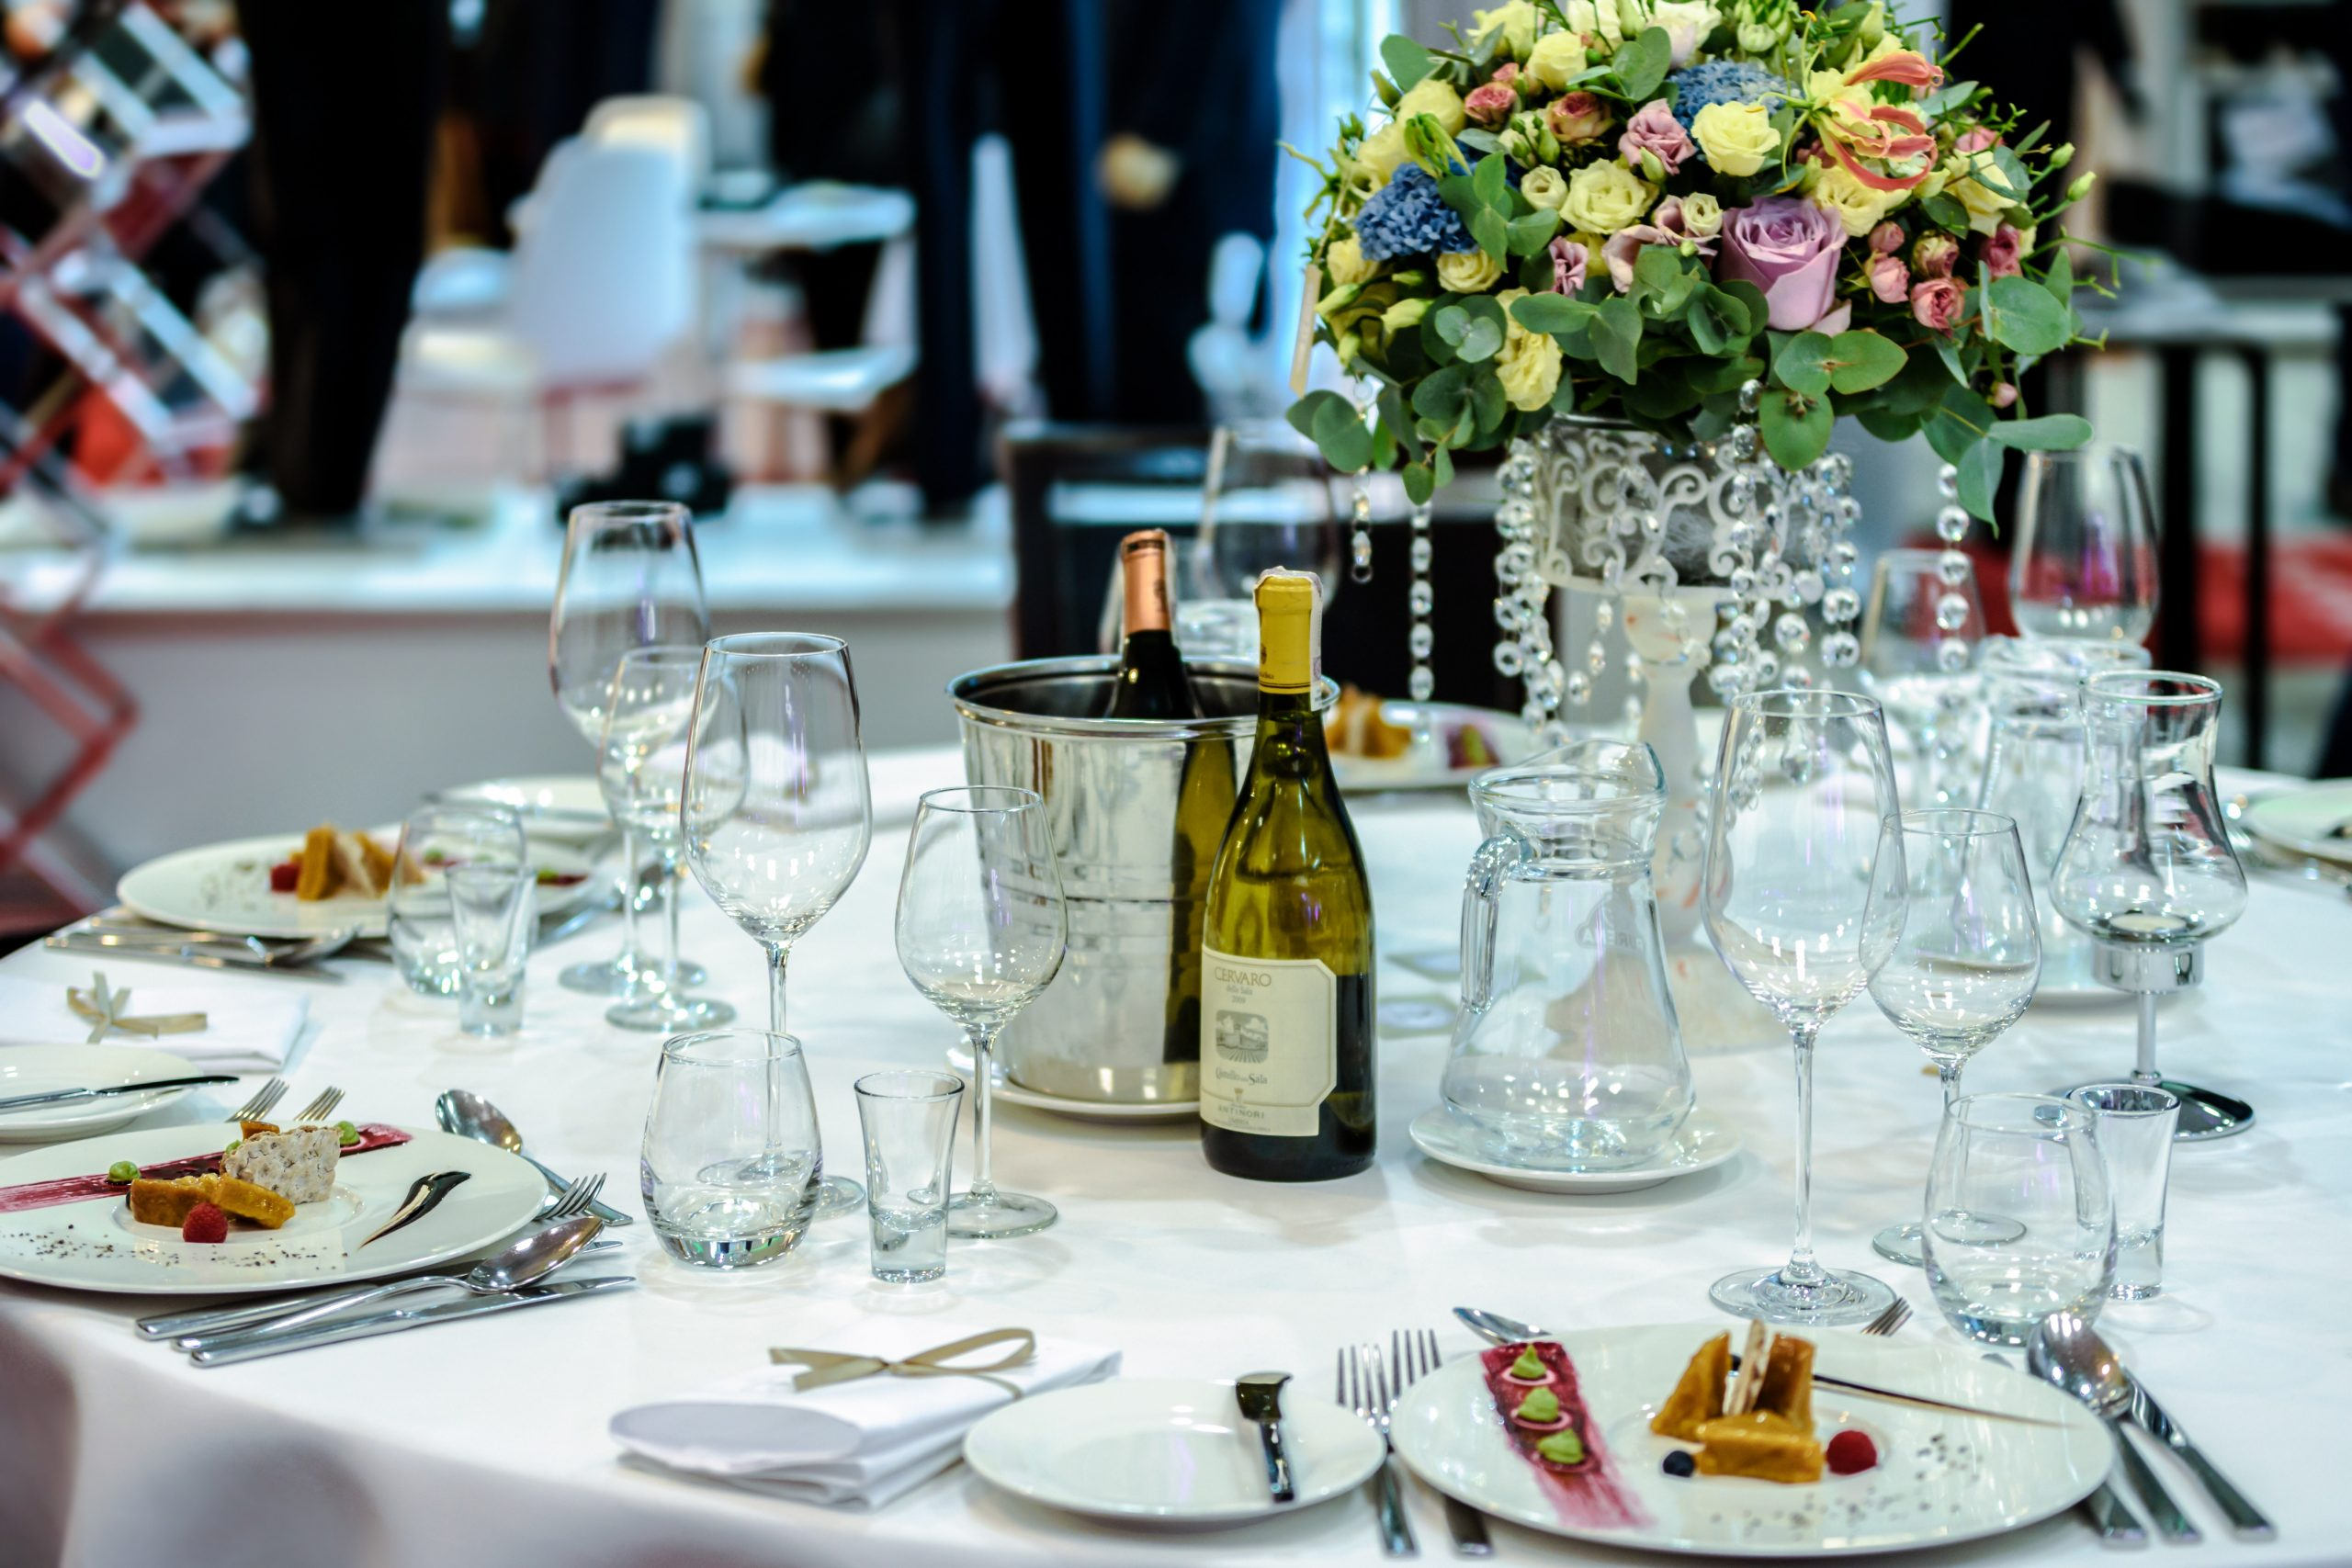 Catering Services in Melbourne